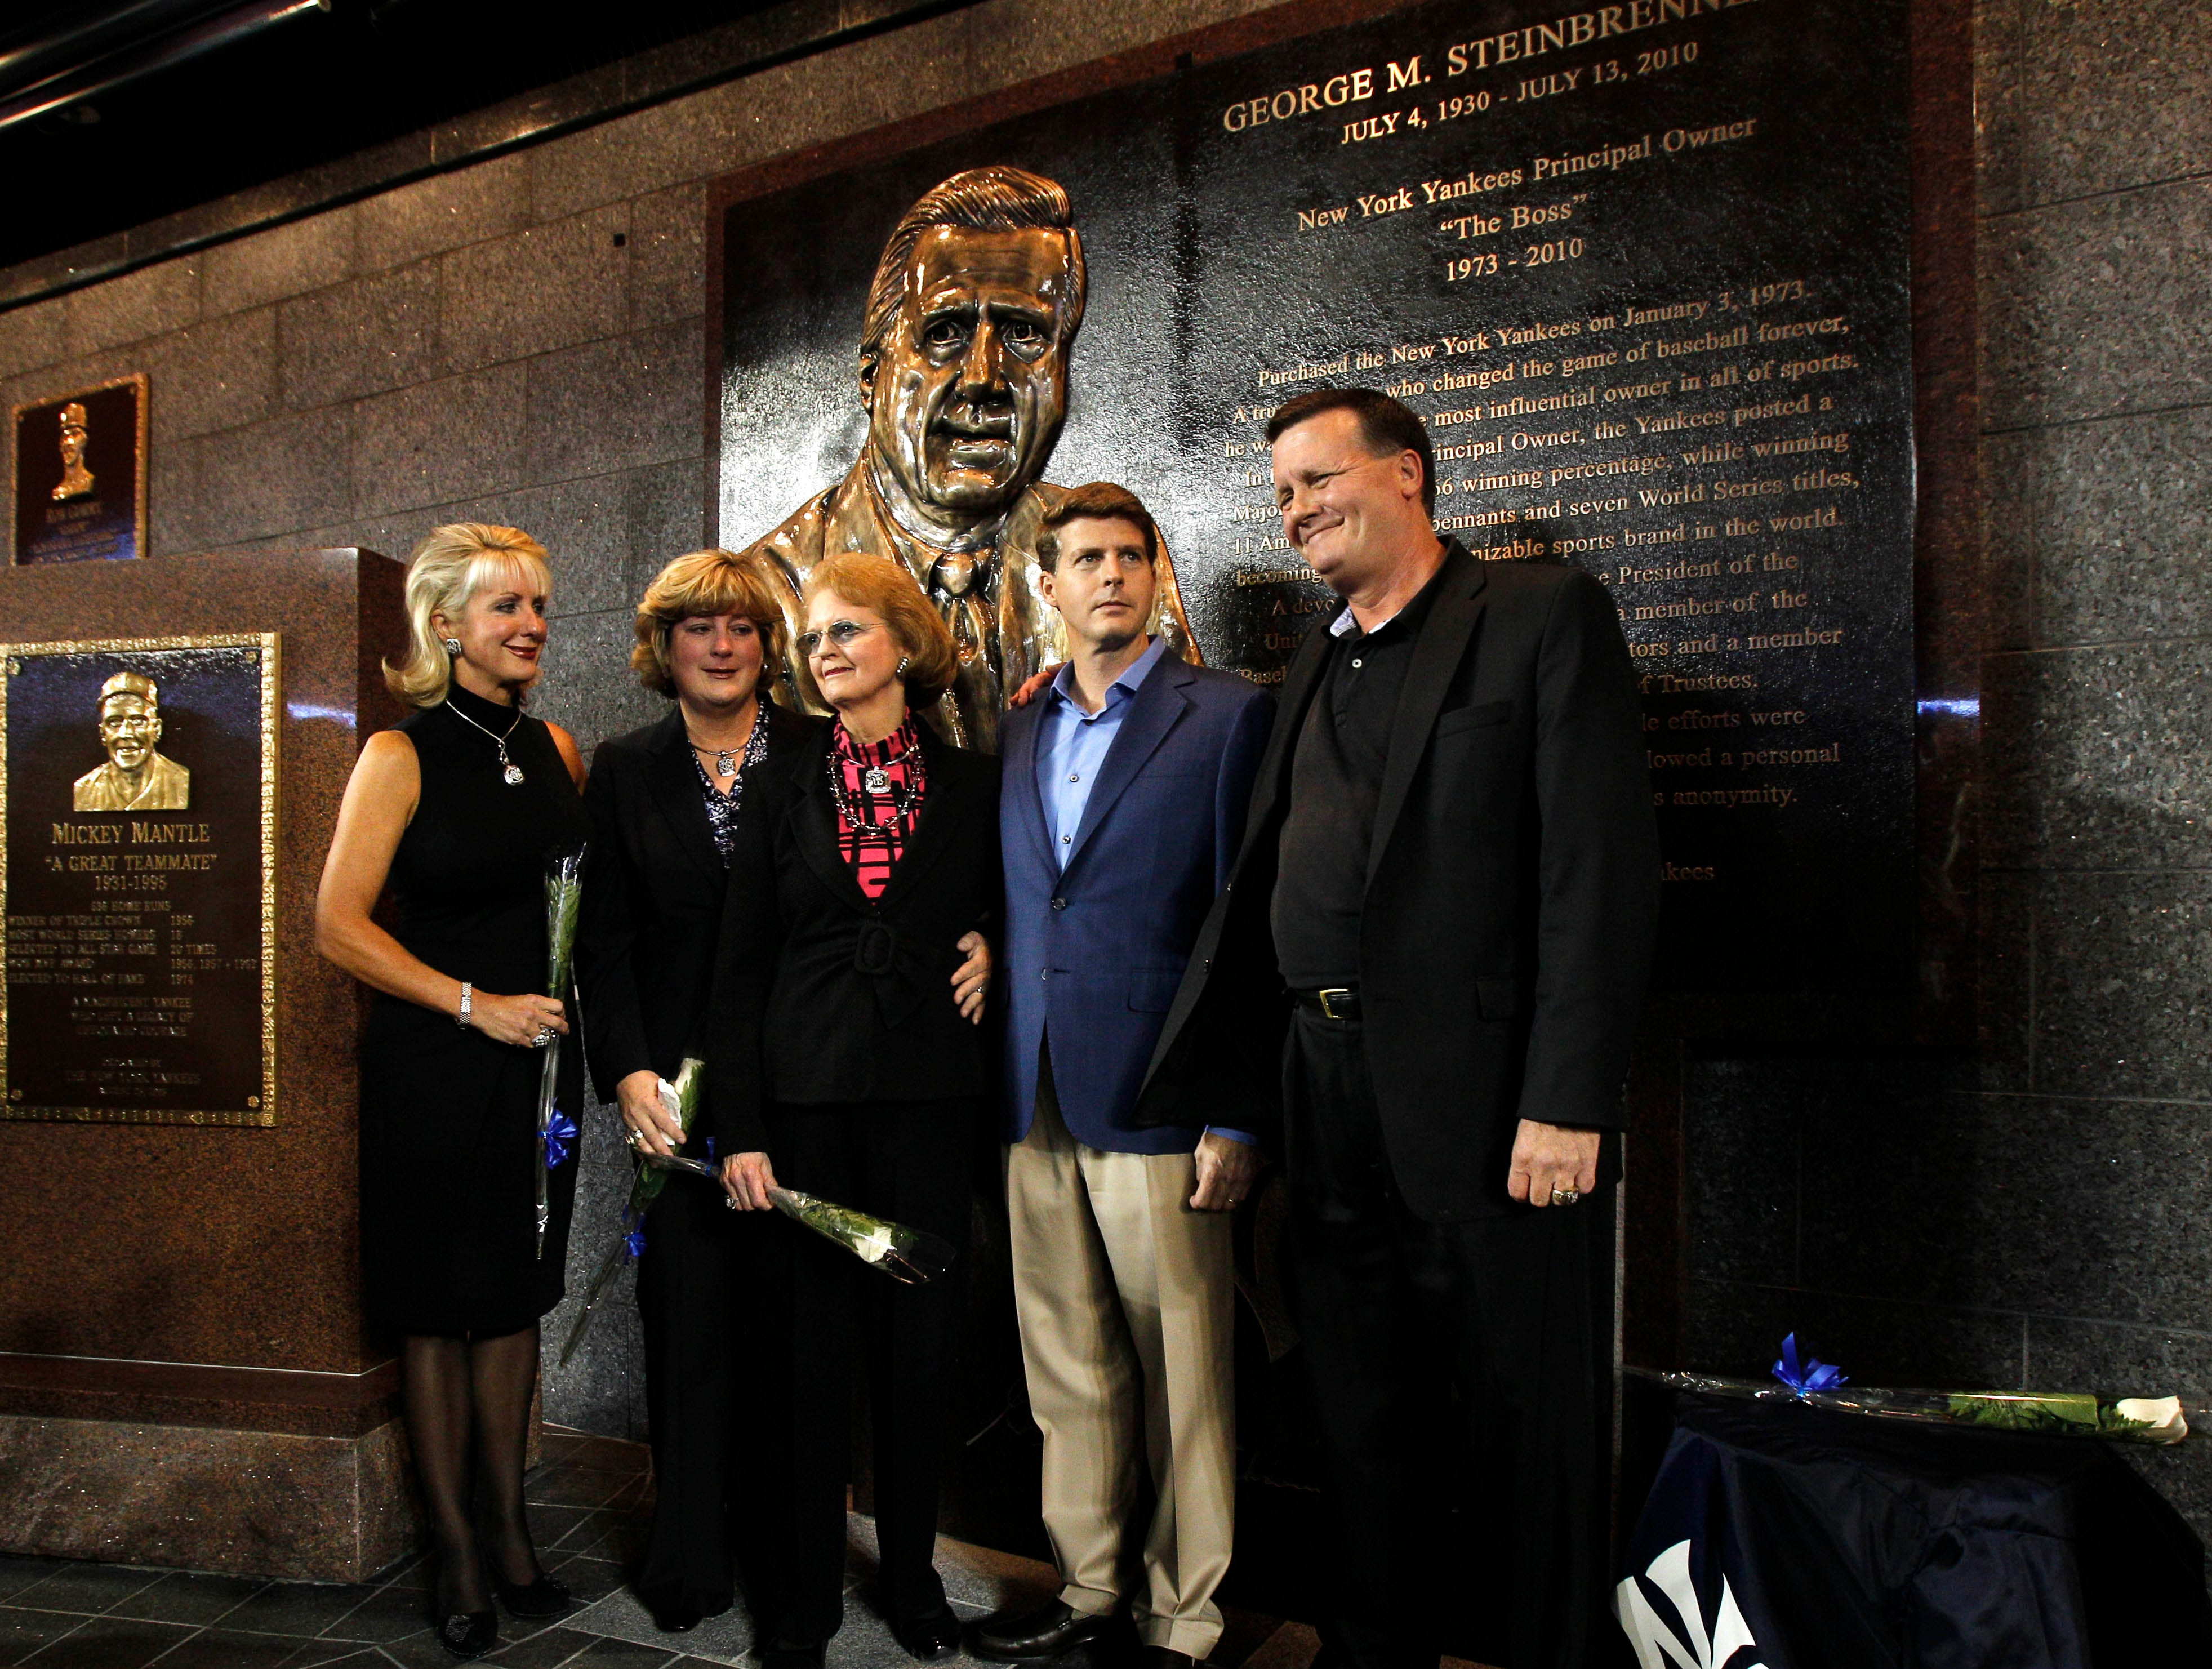 Members of George Steinbrenner's family pose for photographers following a ceremony dedicating a monument to the late Yankees owner, before the Yankees' baseball game against the Tampa Bay Rays at Yankee Stadium in New York, Monday, Sept. 20, 2010. From left are daughters Jennifer Steinbrenner Swindal and Jessica Steinbrenner; widow Joan Steinbrenner; and sons Hal and Hank Steinbrenner. (AP Photo/Kathy Willens, Pool)